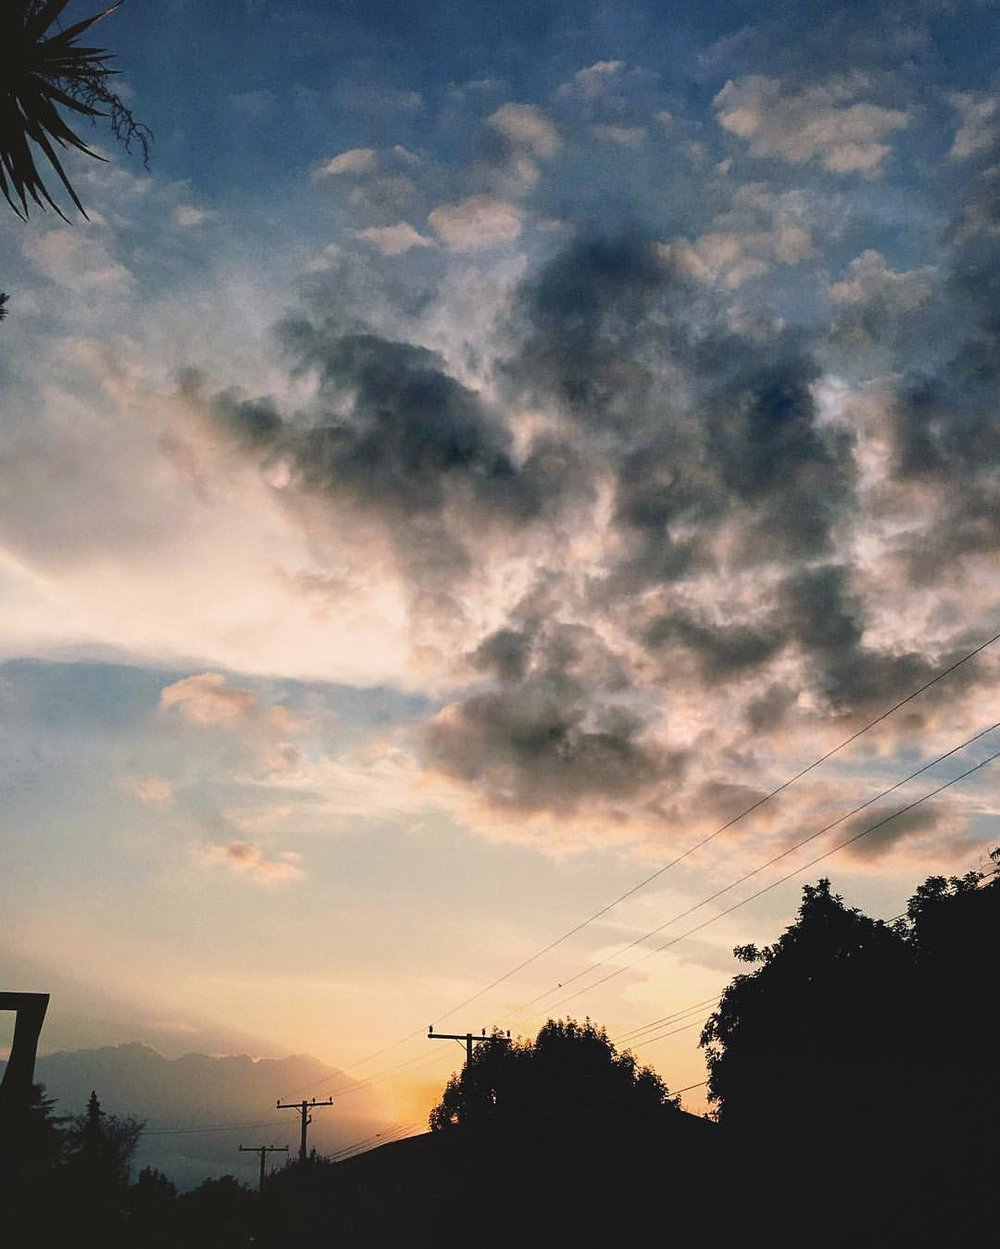 the-view-from-my-house-is-alright-sometimes-122366---sunset-clouds-cloudporn-deep-moody-fluff-silhouette-suburbia-lookslikefilm-sunrays-blue-and-cream_26838266304_o.jpg